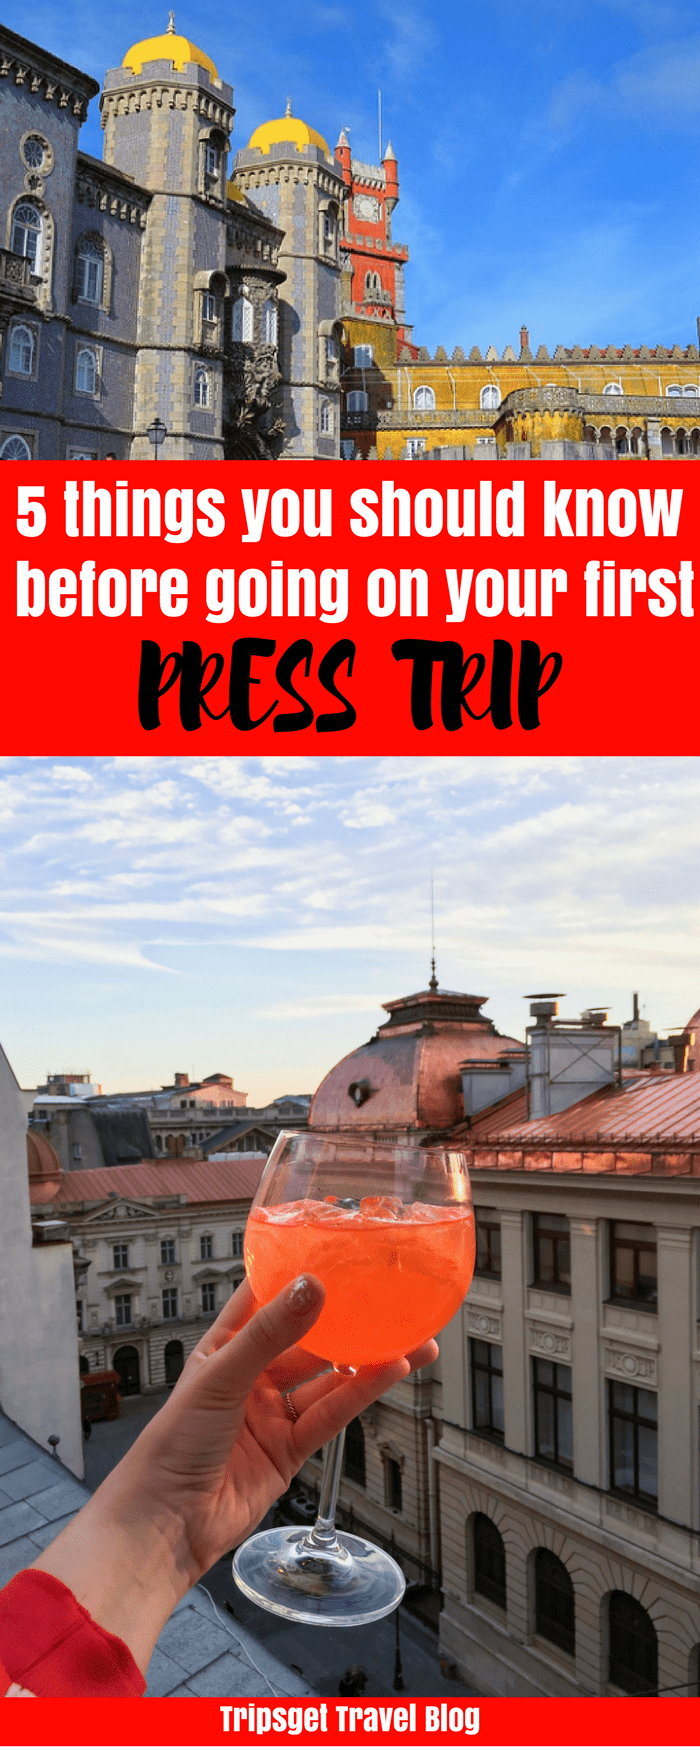 5 things you should know before going on a press trip to avoid disappointment